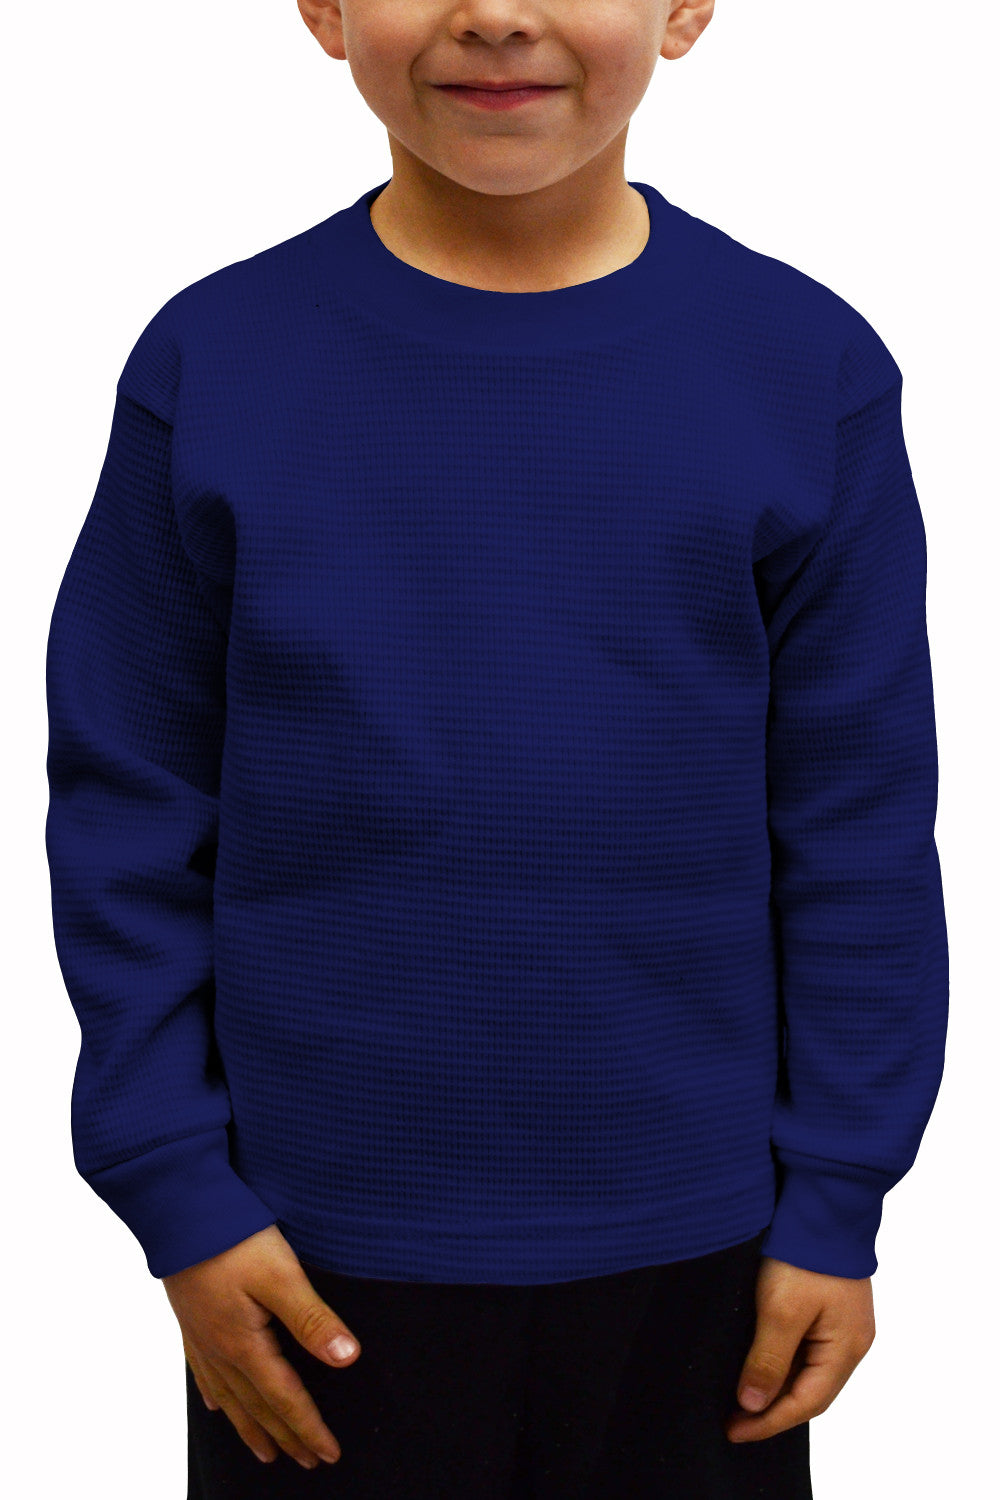 Kids Thermal Knit Tops Long Sleeve Navy